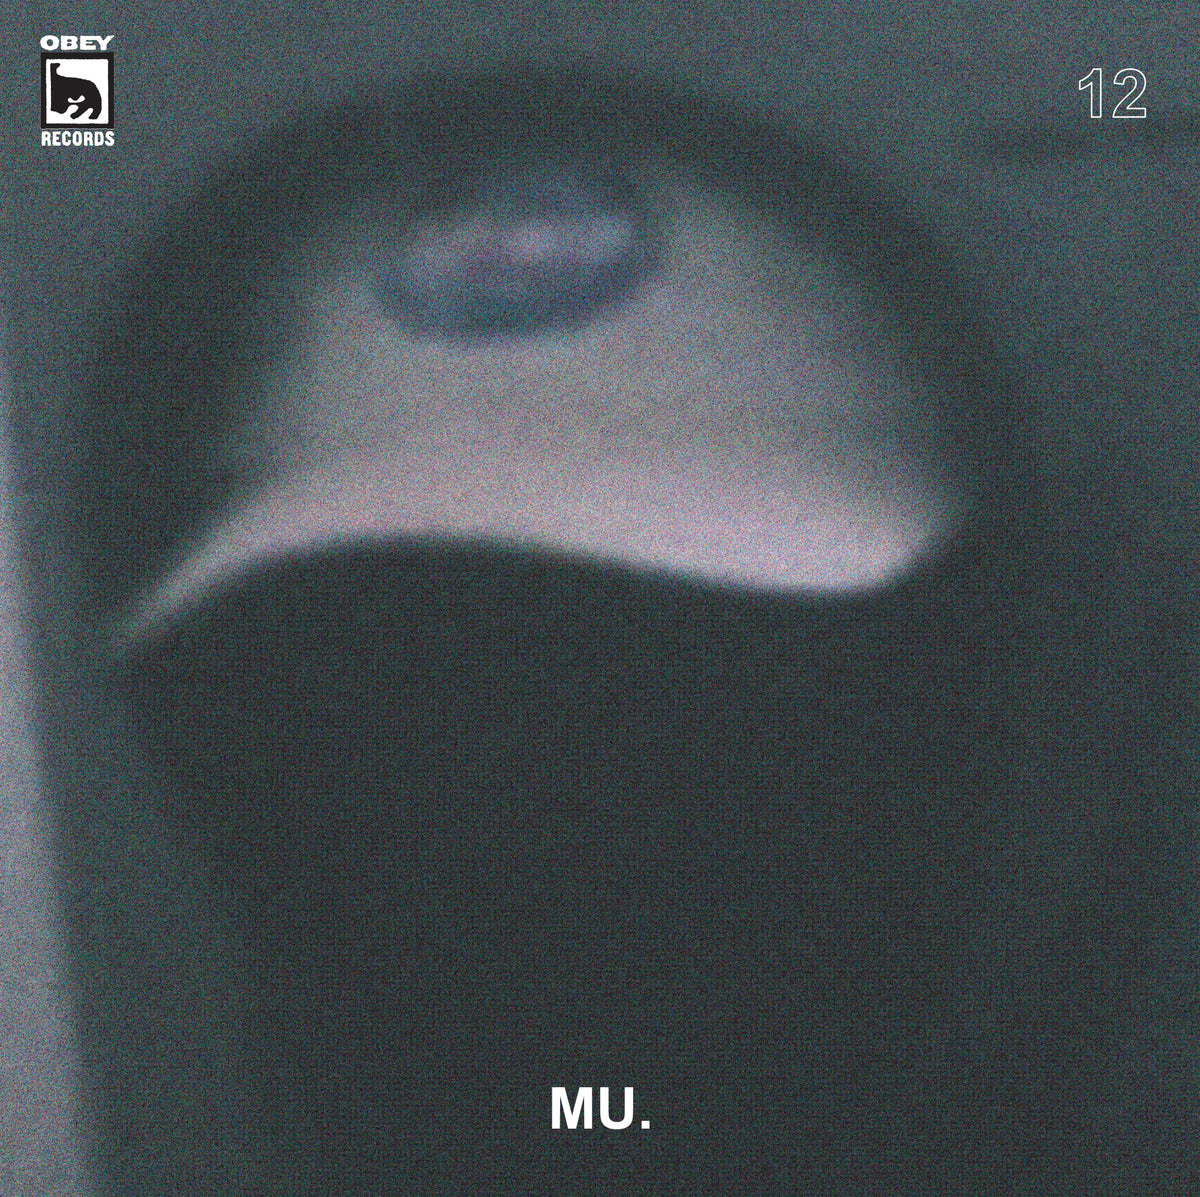 OBEY RECORDS Ep. 12: Mu.